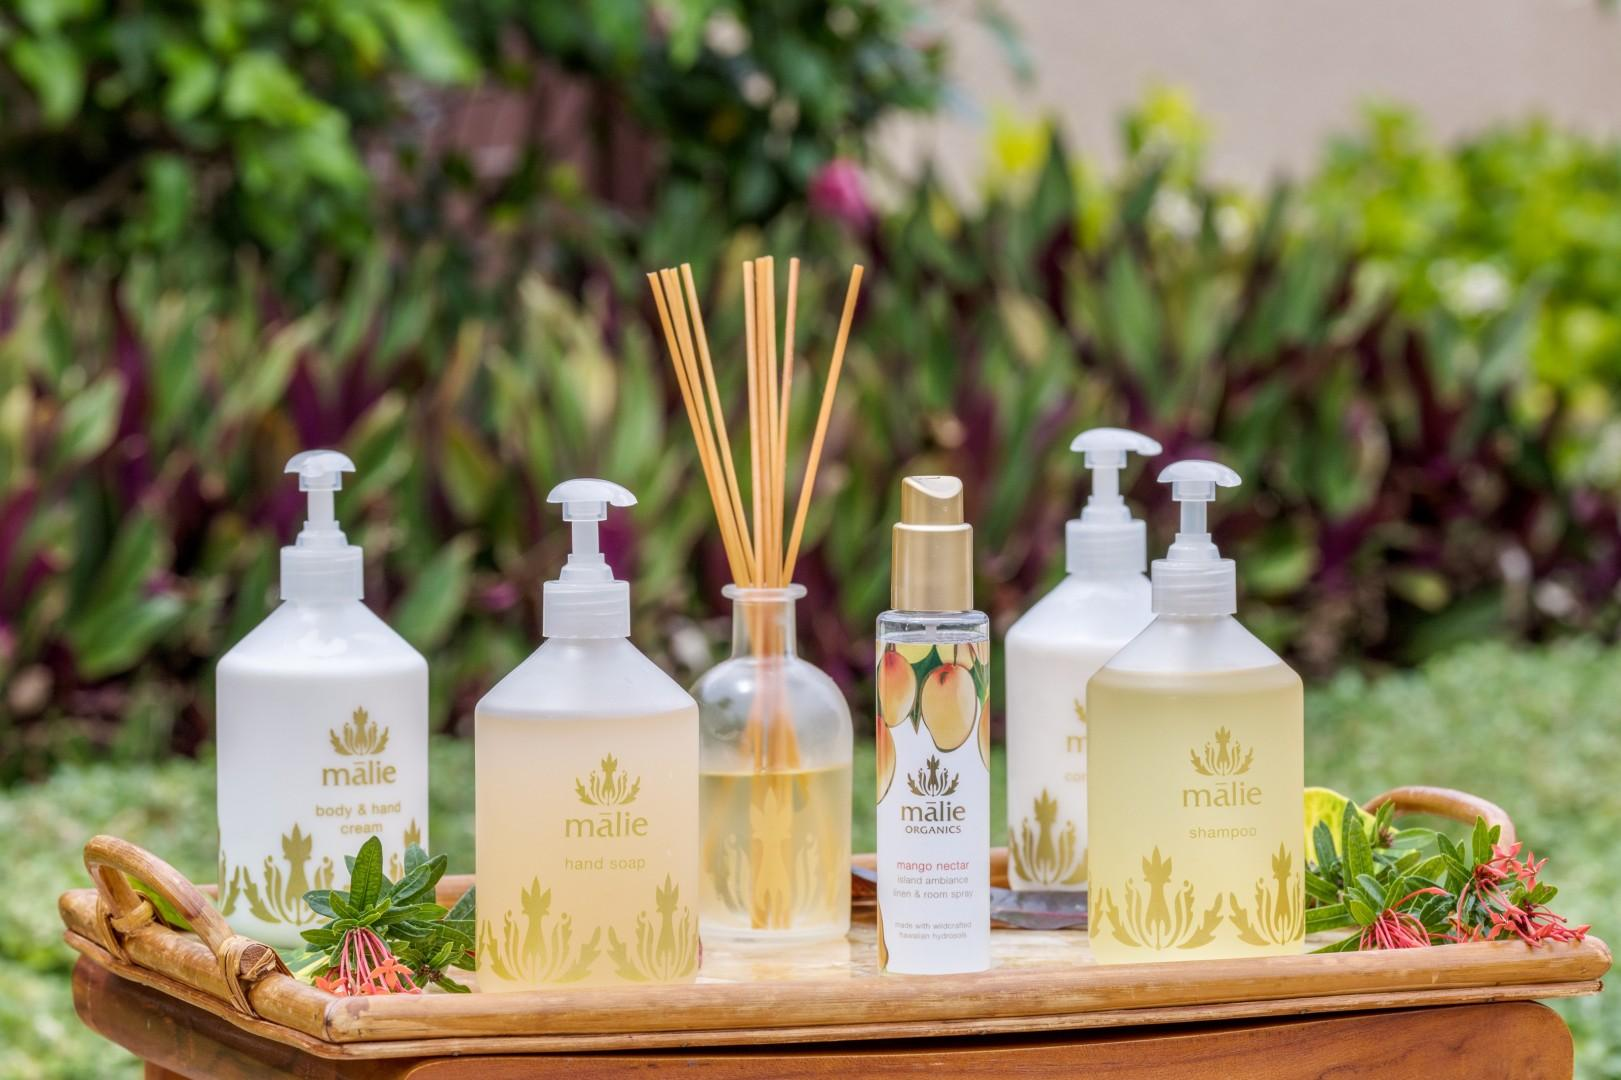 All natural Malie bath amenities add even more heavenly scents to your stay!